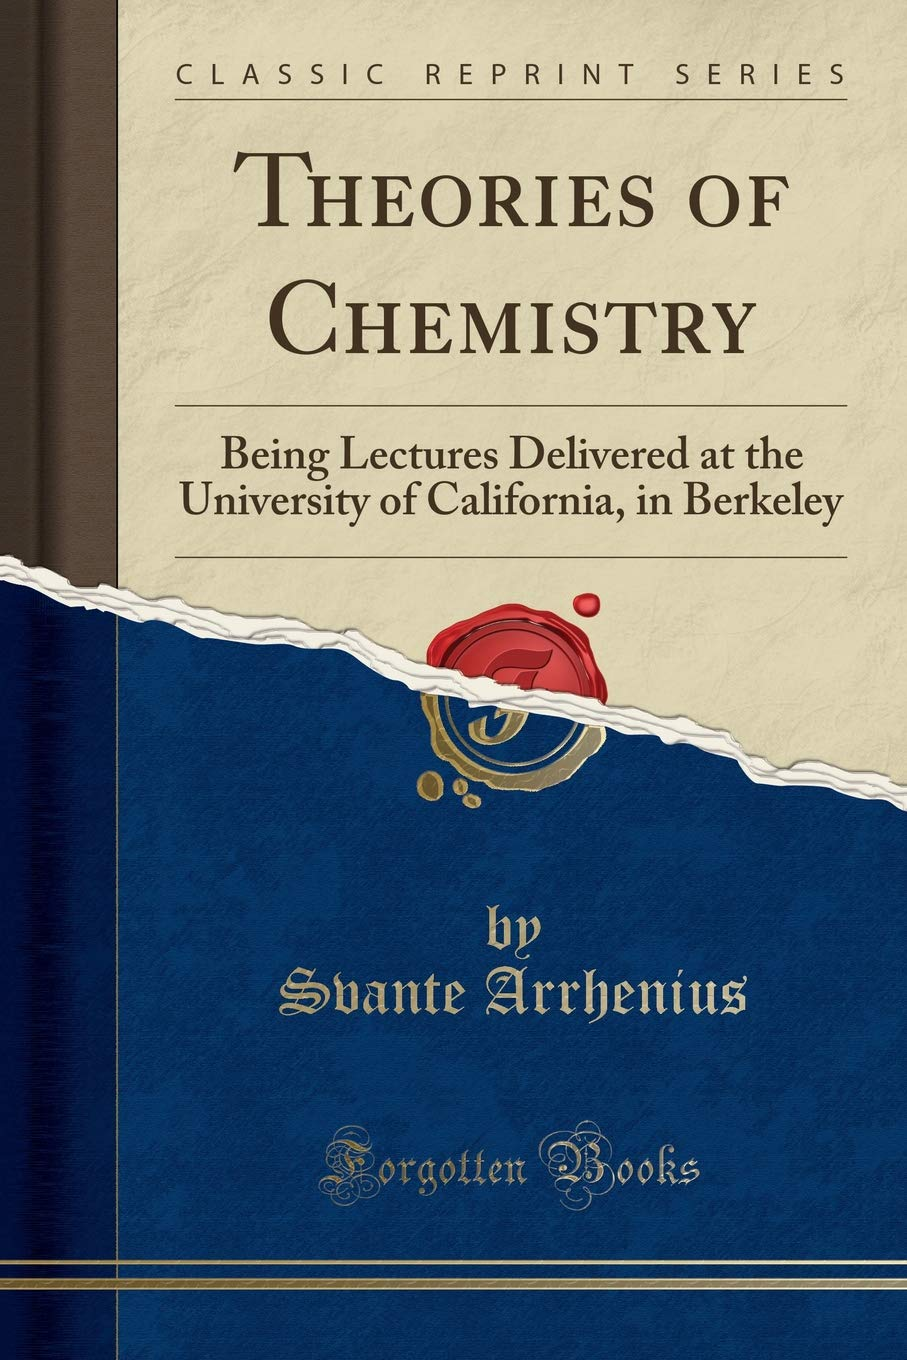 Download Theories of Chemistry: Being Lectures Delivered at the University of California, in Berkeley (Classic Reprint) ebook